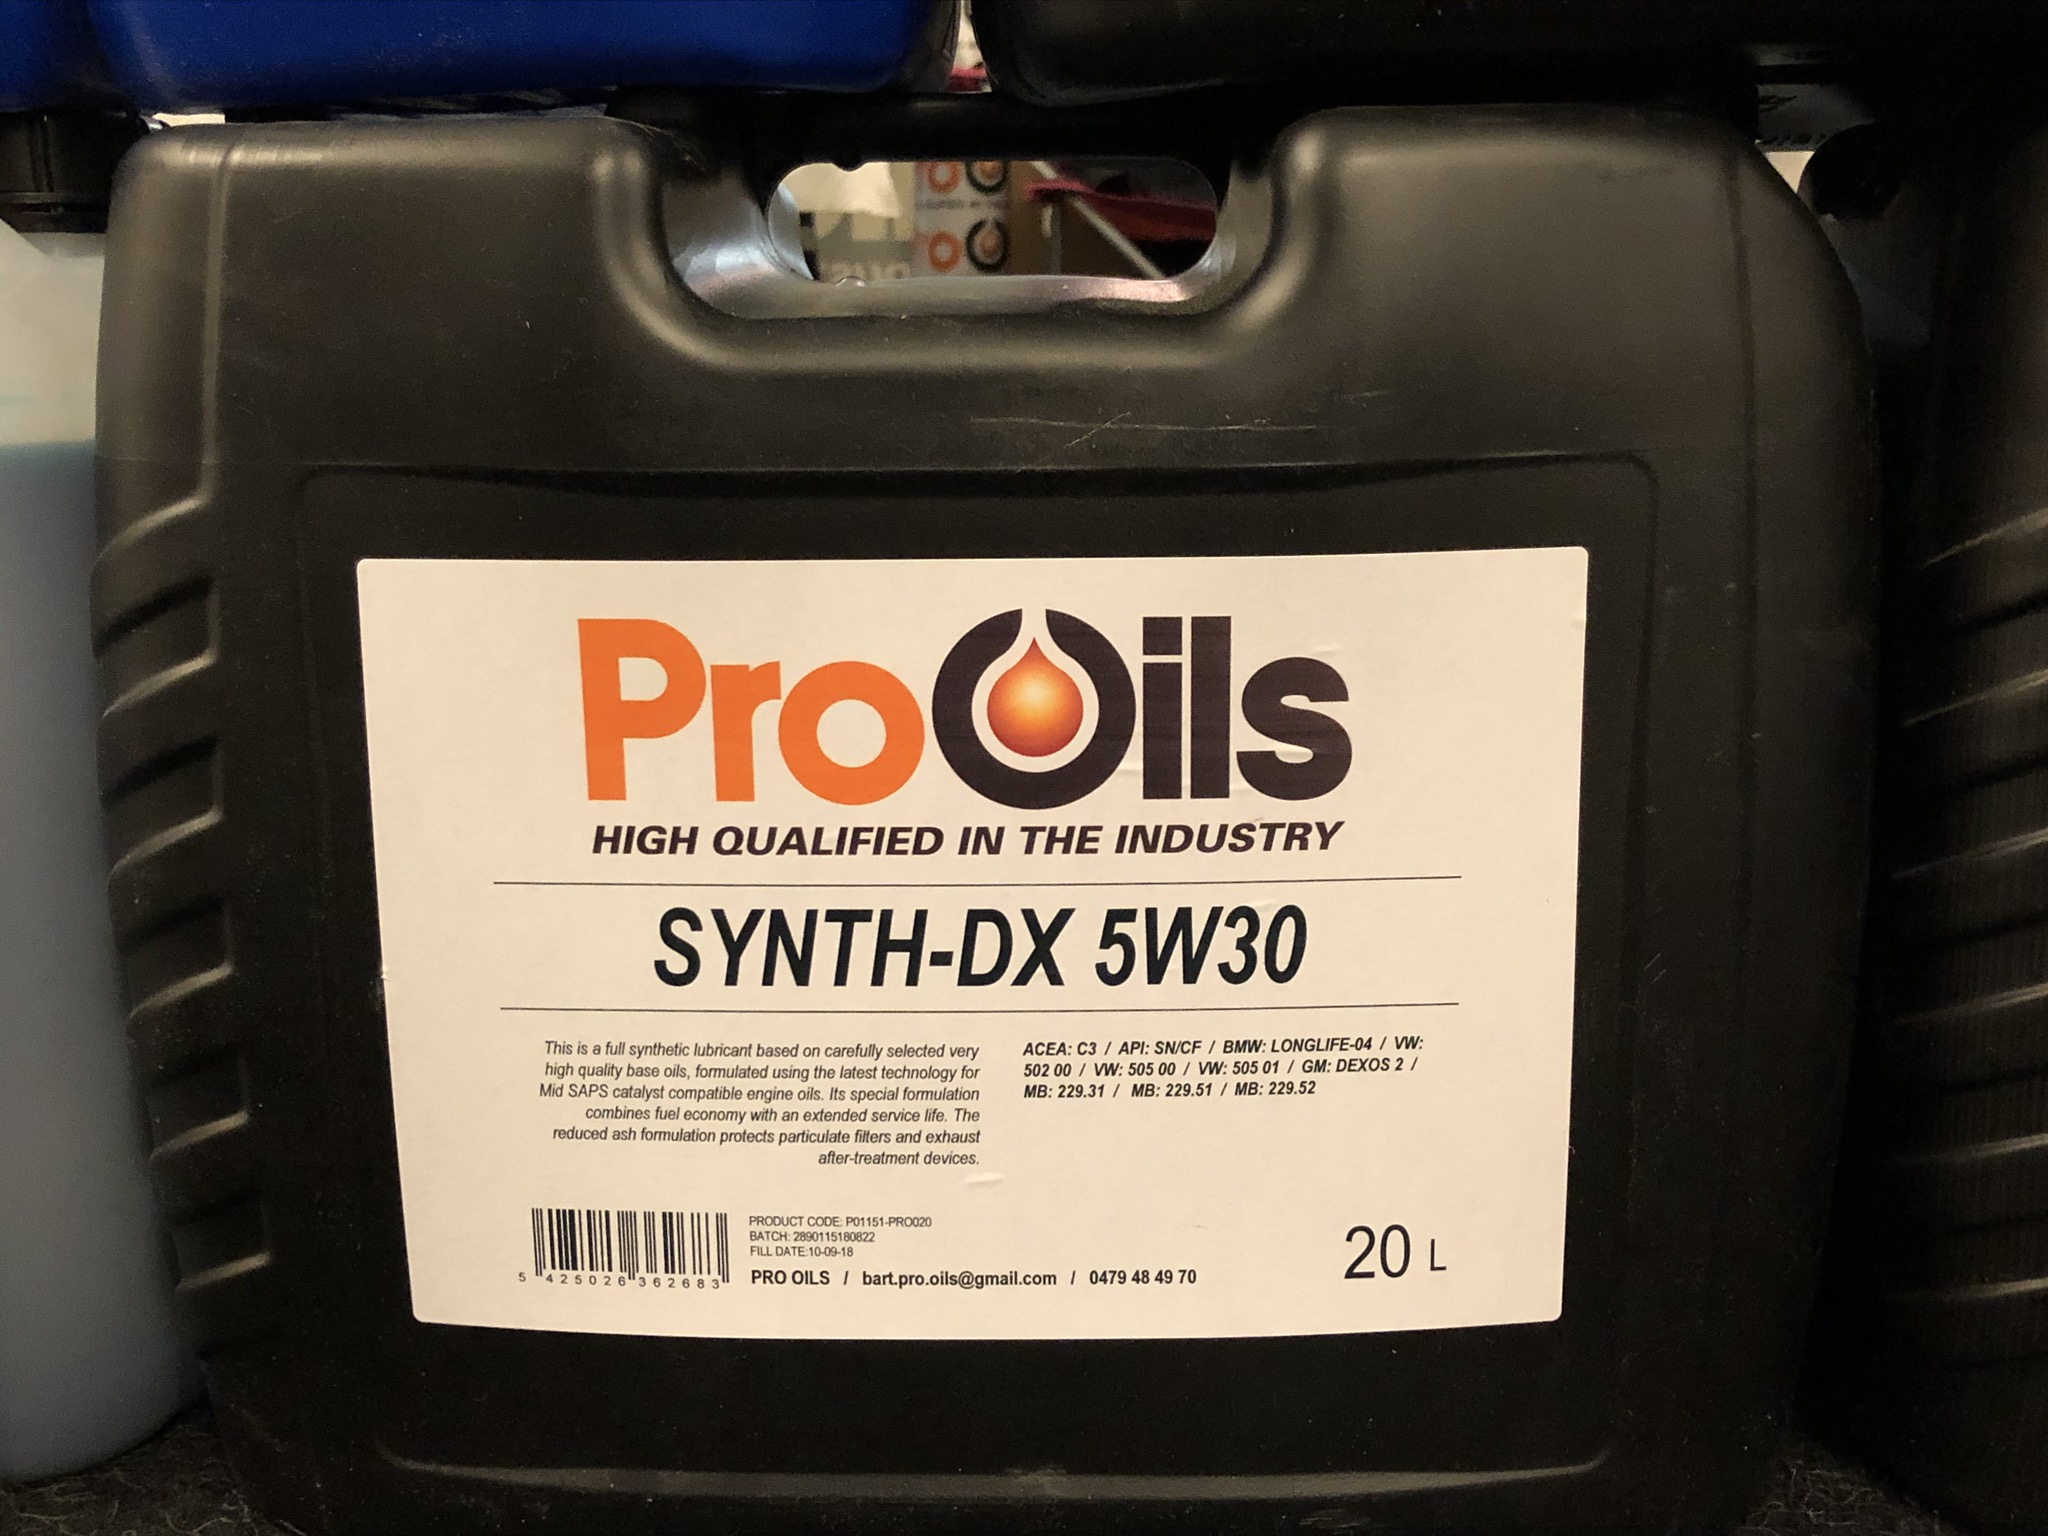 Synth-DX 5W30